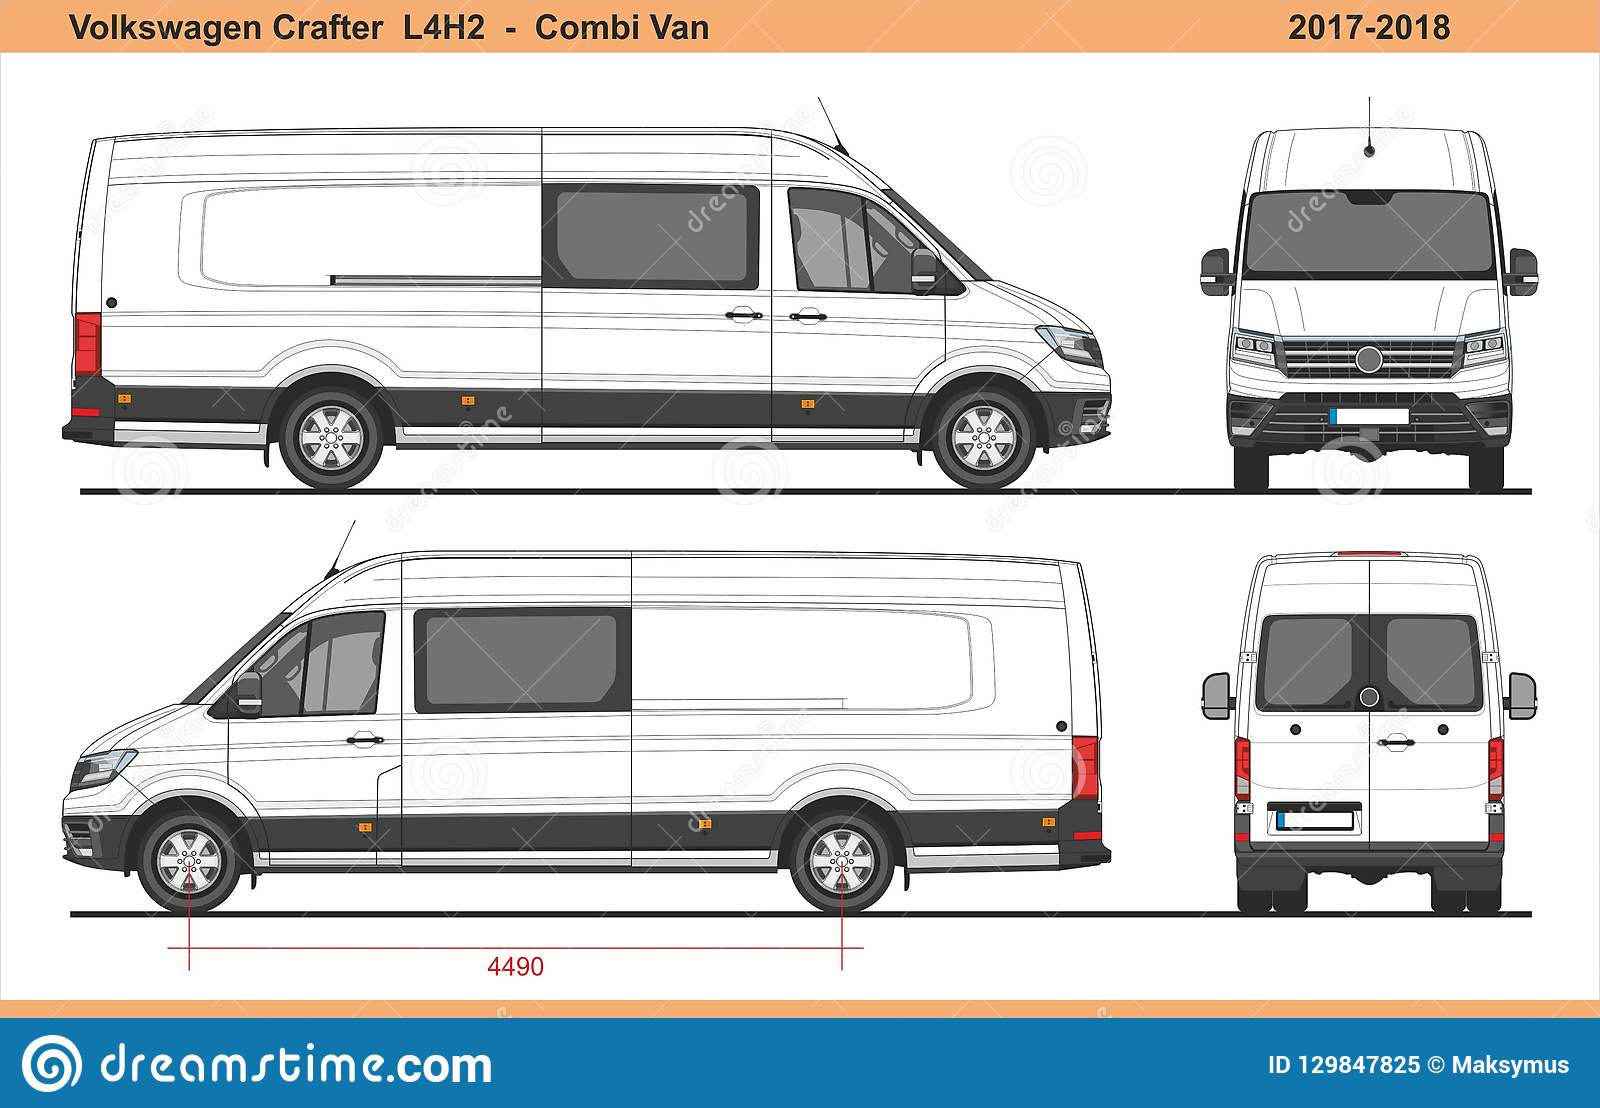 volkswagen crafter combi van l4h2 2017 2018 editorial. Black Bedroom Furniture Sets. Home Design Ideas